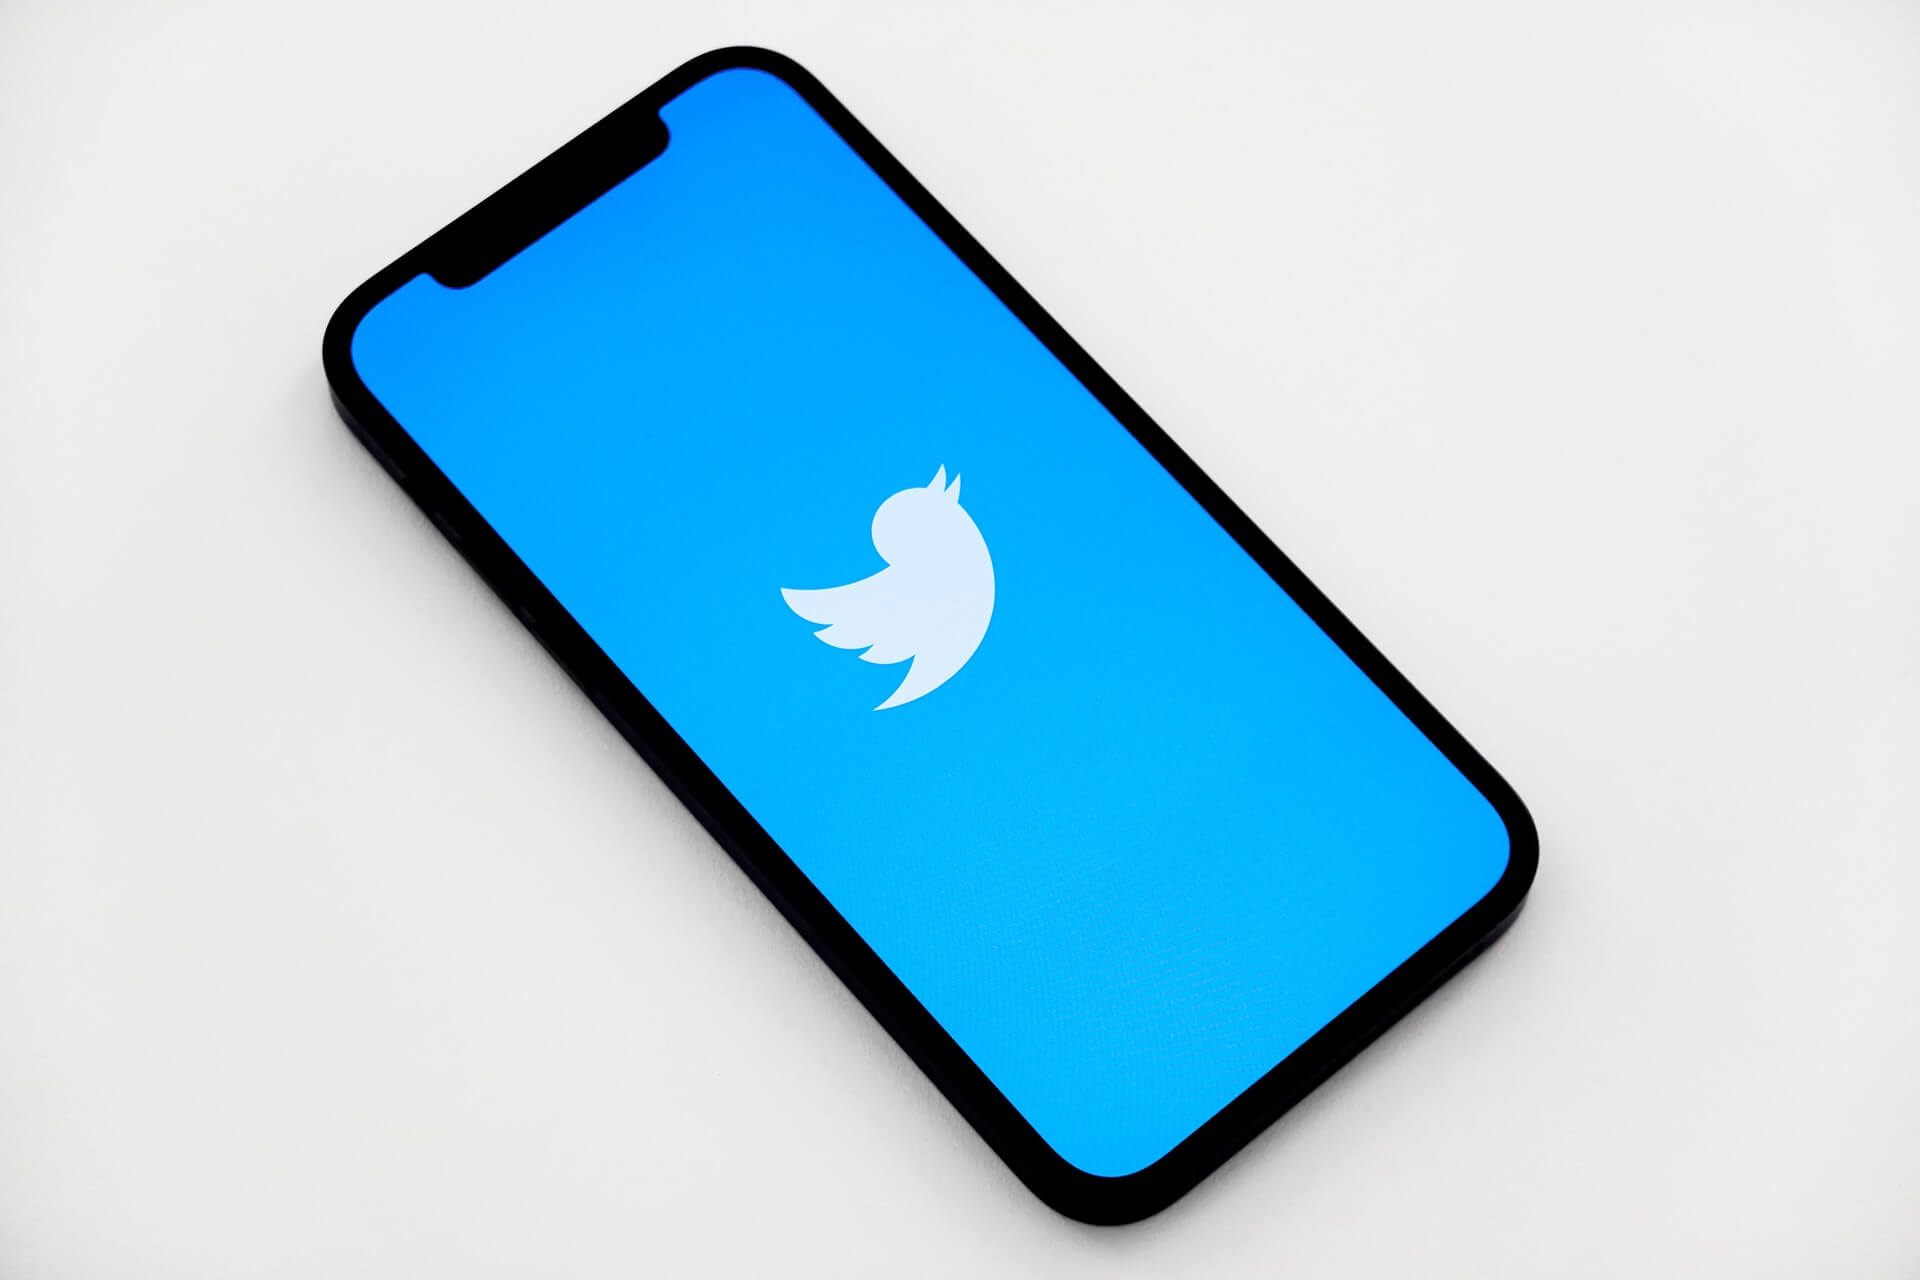 Why Use Twitter? What Are the Main Features?